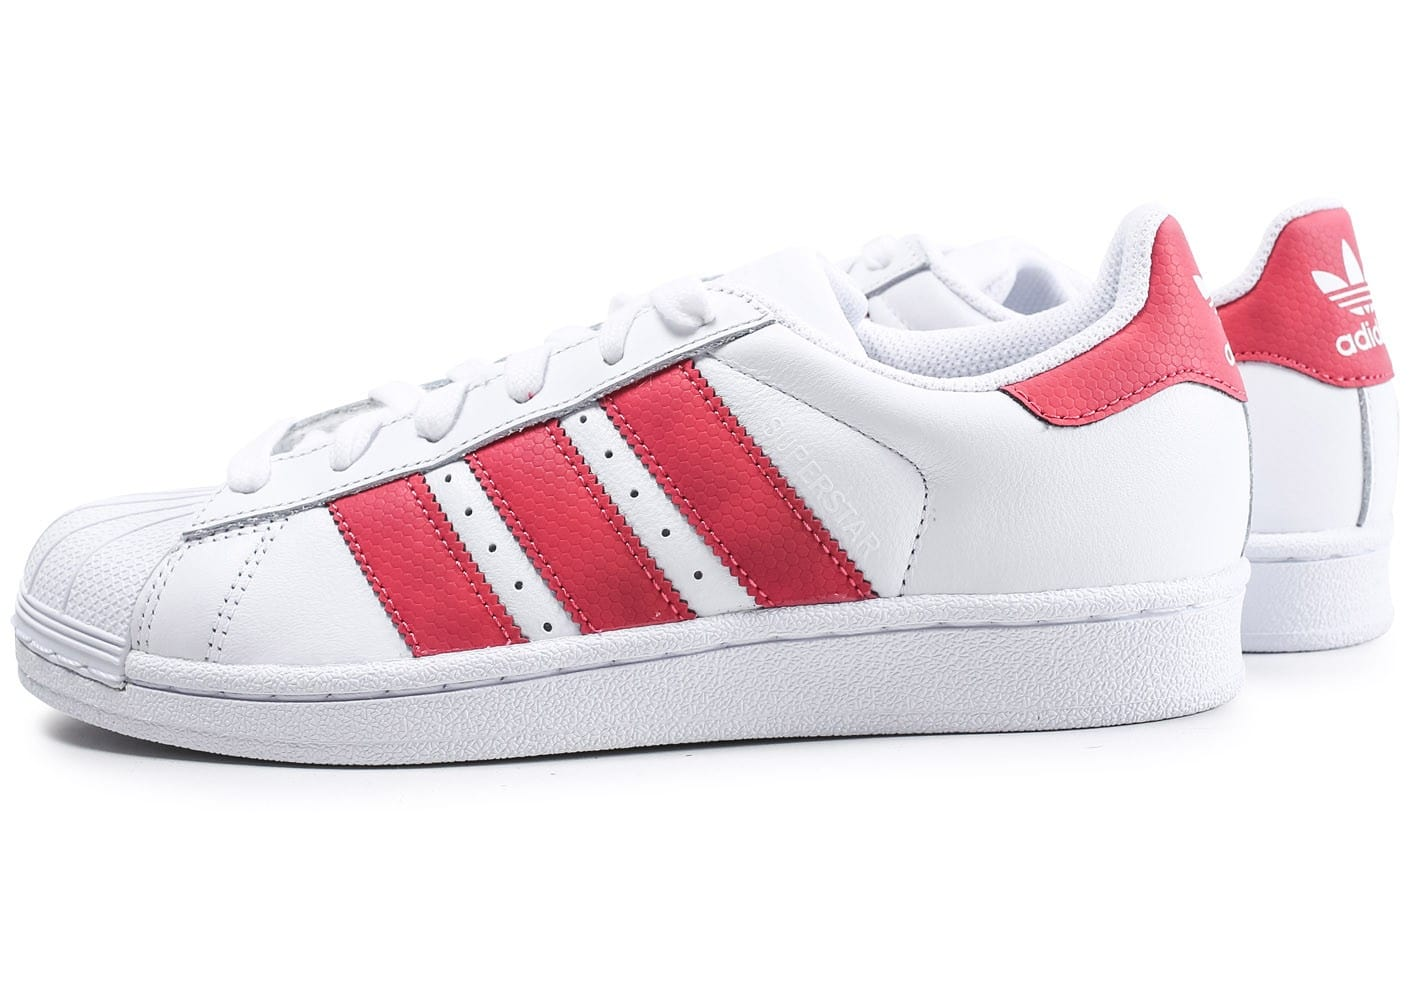 adidas superstar iridescent junior blanche et rose chaussures adidas chausport. Black Bedroom Furniture Sets. Home Design Ideas